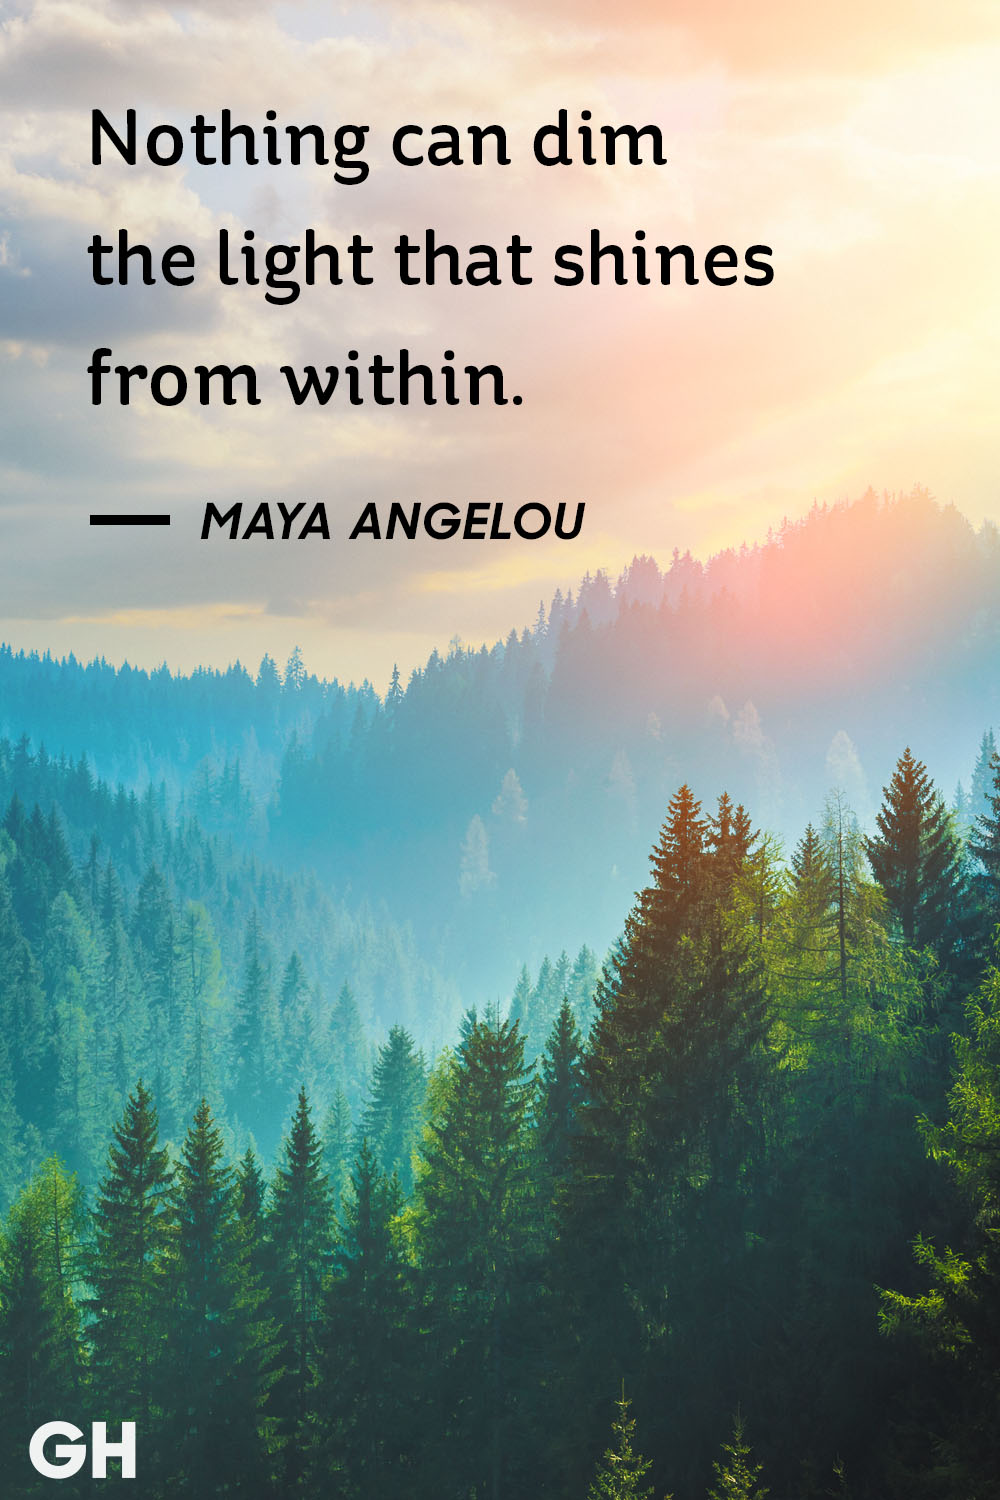 Maya Angelou Quotes About Friendship 20 Life Quotes Everyone Should Live Beautiful Quotes About Life